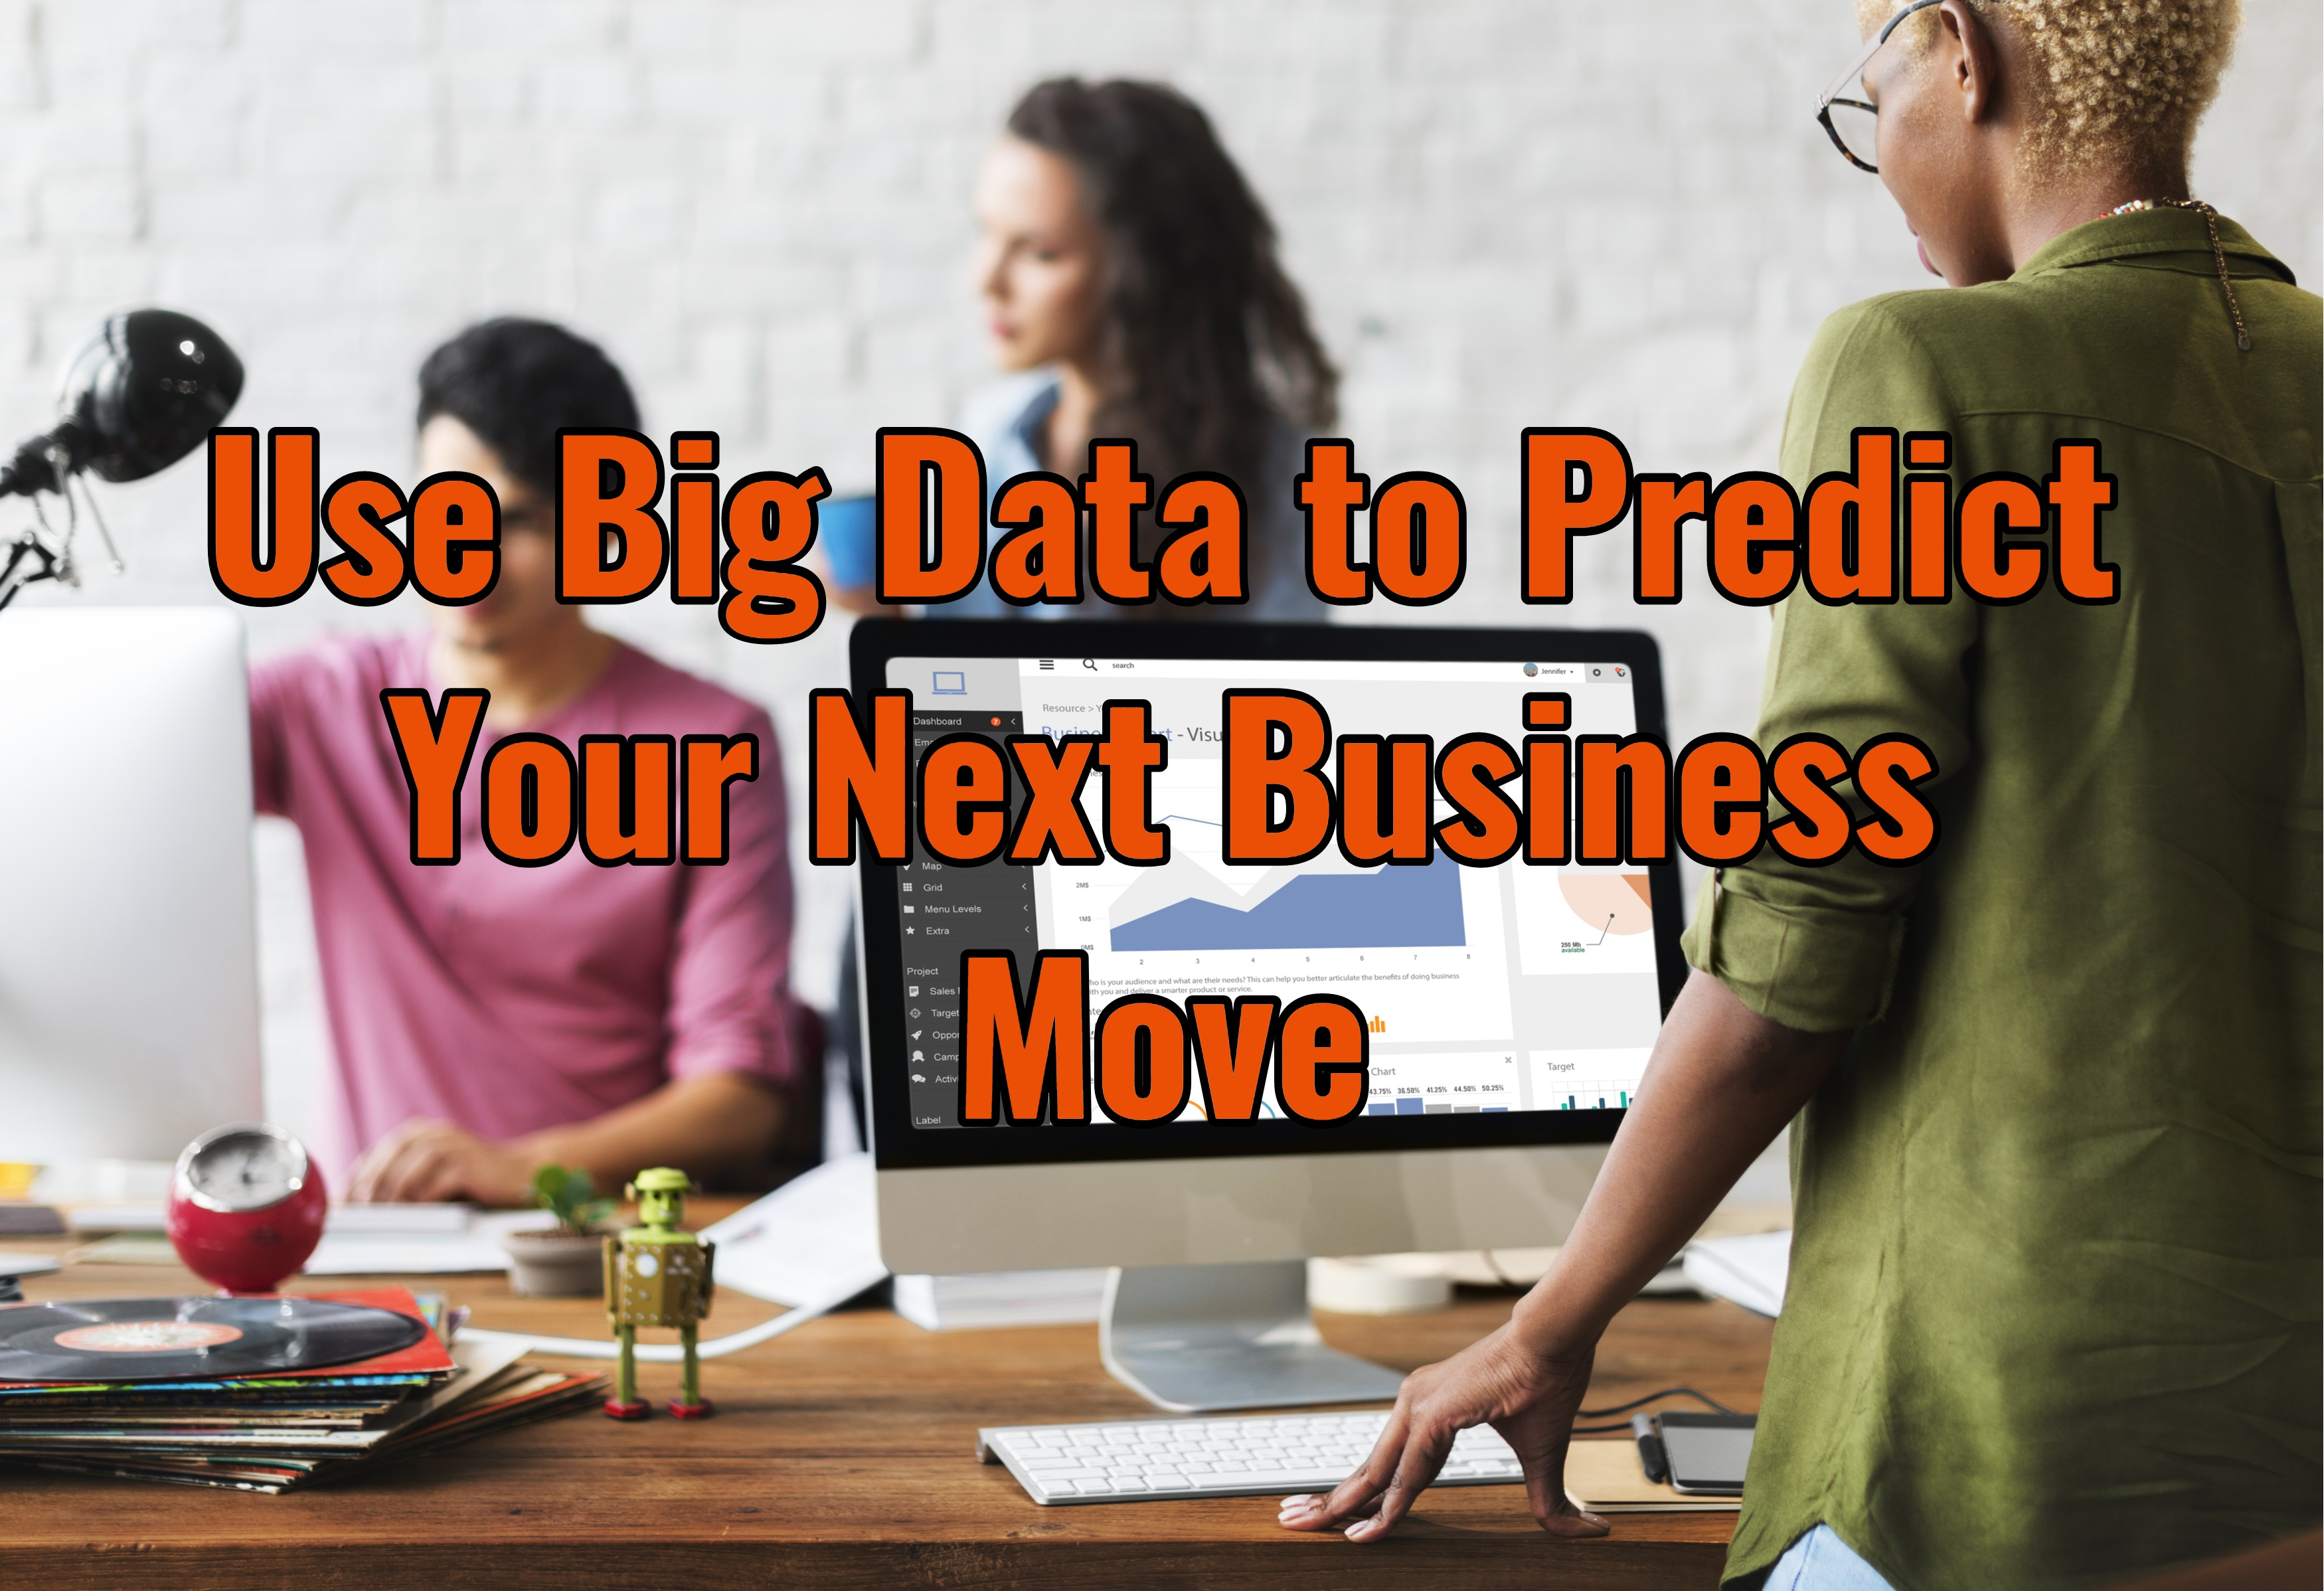 Use Big Data to Predict Your Next Business Move